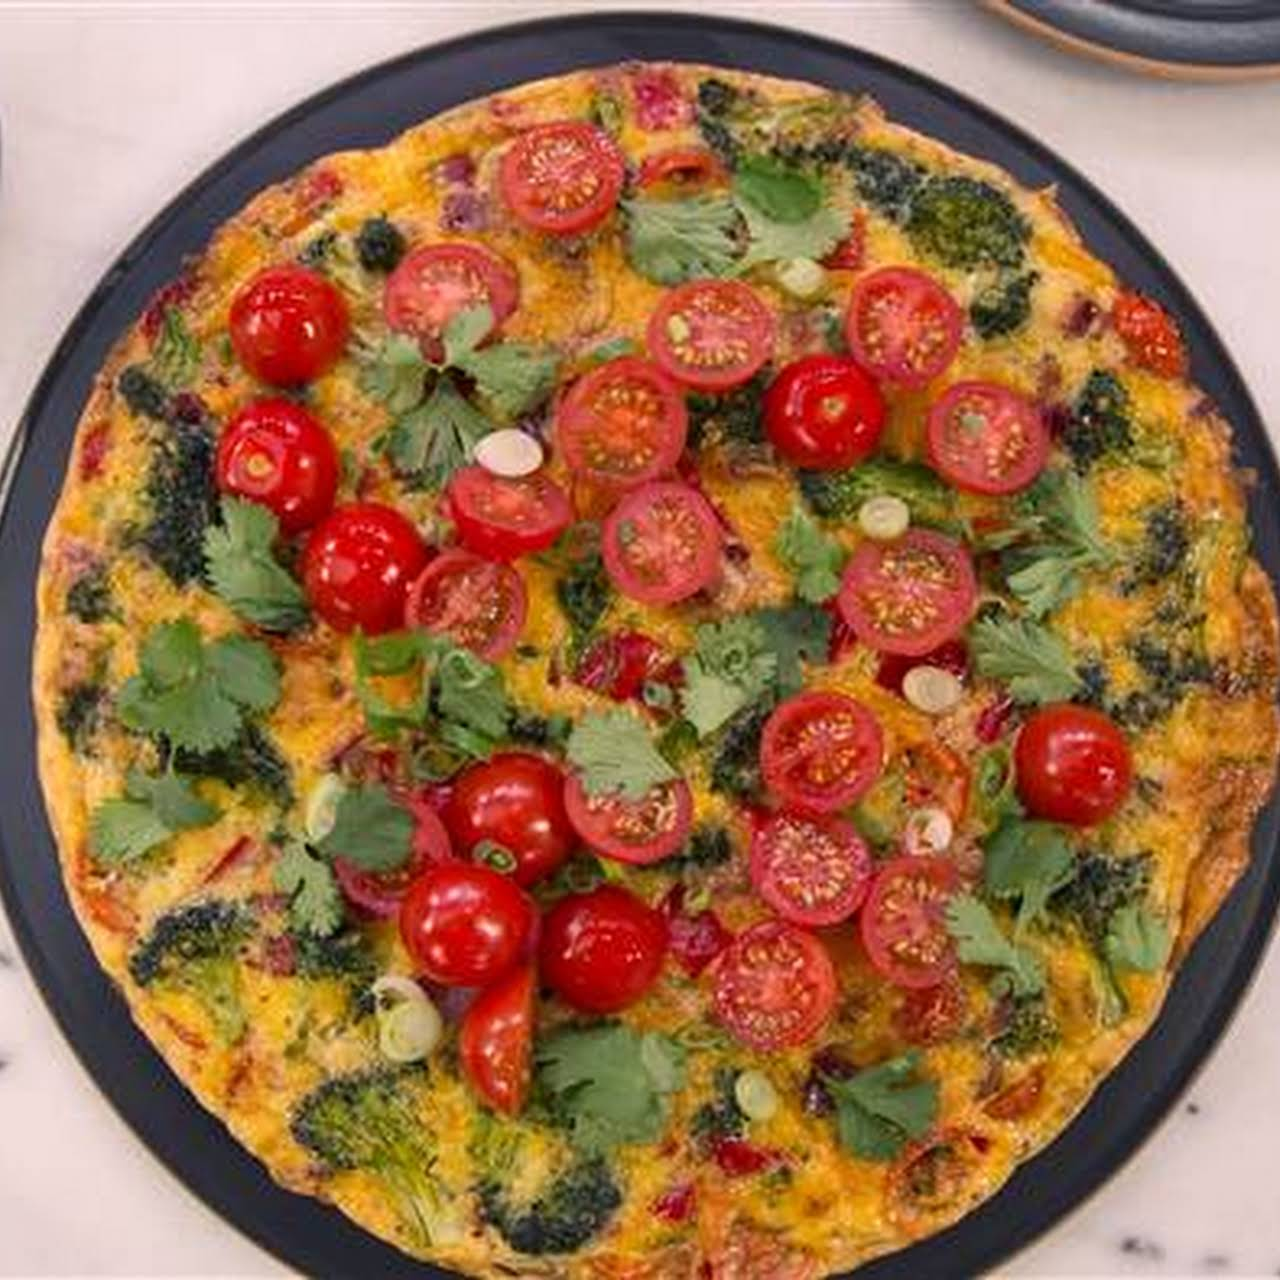 Kitchen Sink Vegetable Frittata